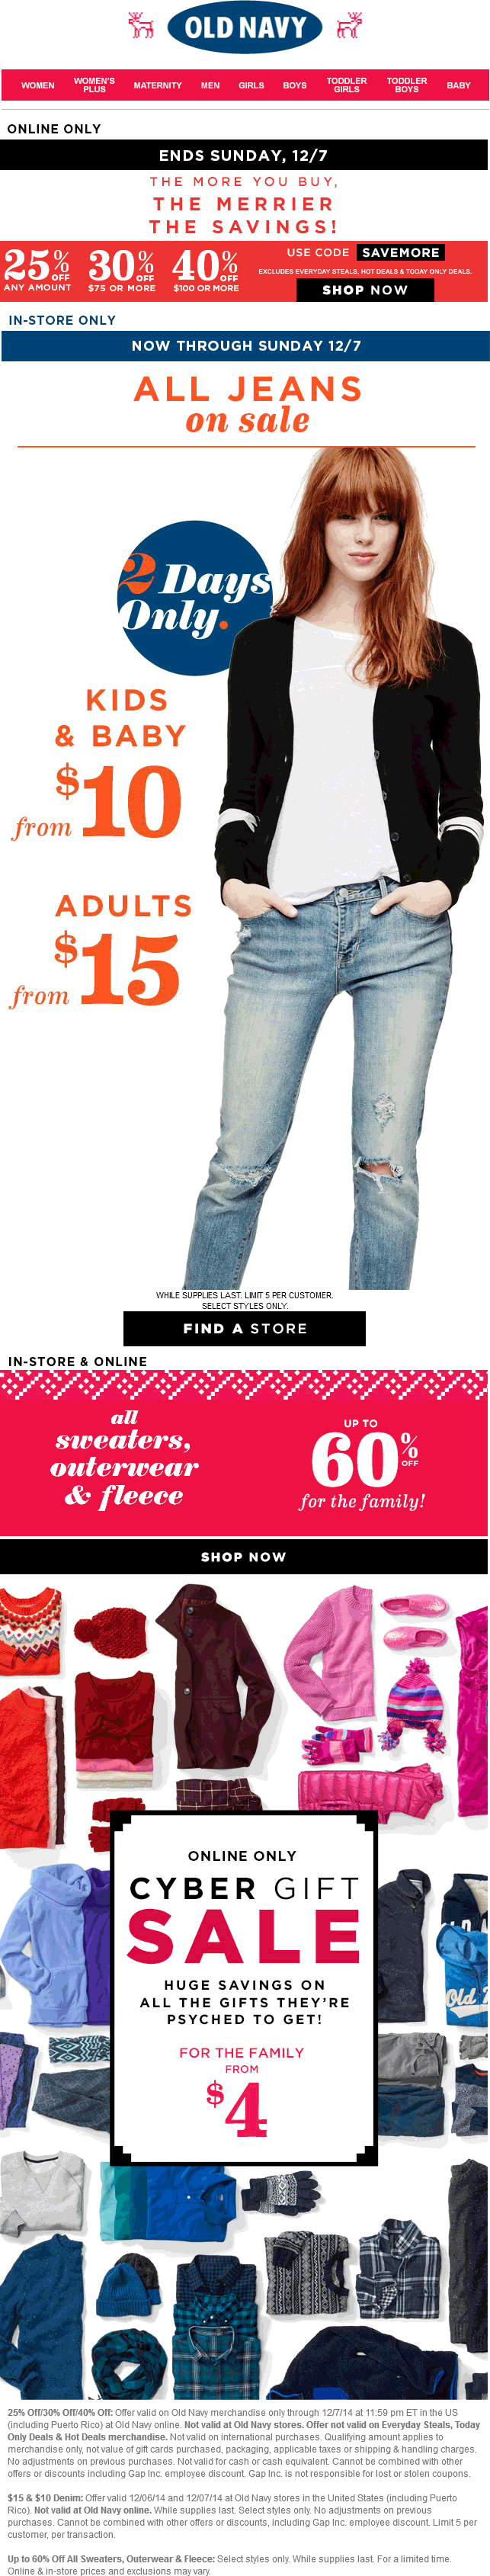 Old Navy Coupon June 2018 25-40% off everything & more online at Old Navy via promo code SAVEMORE